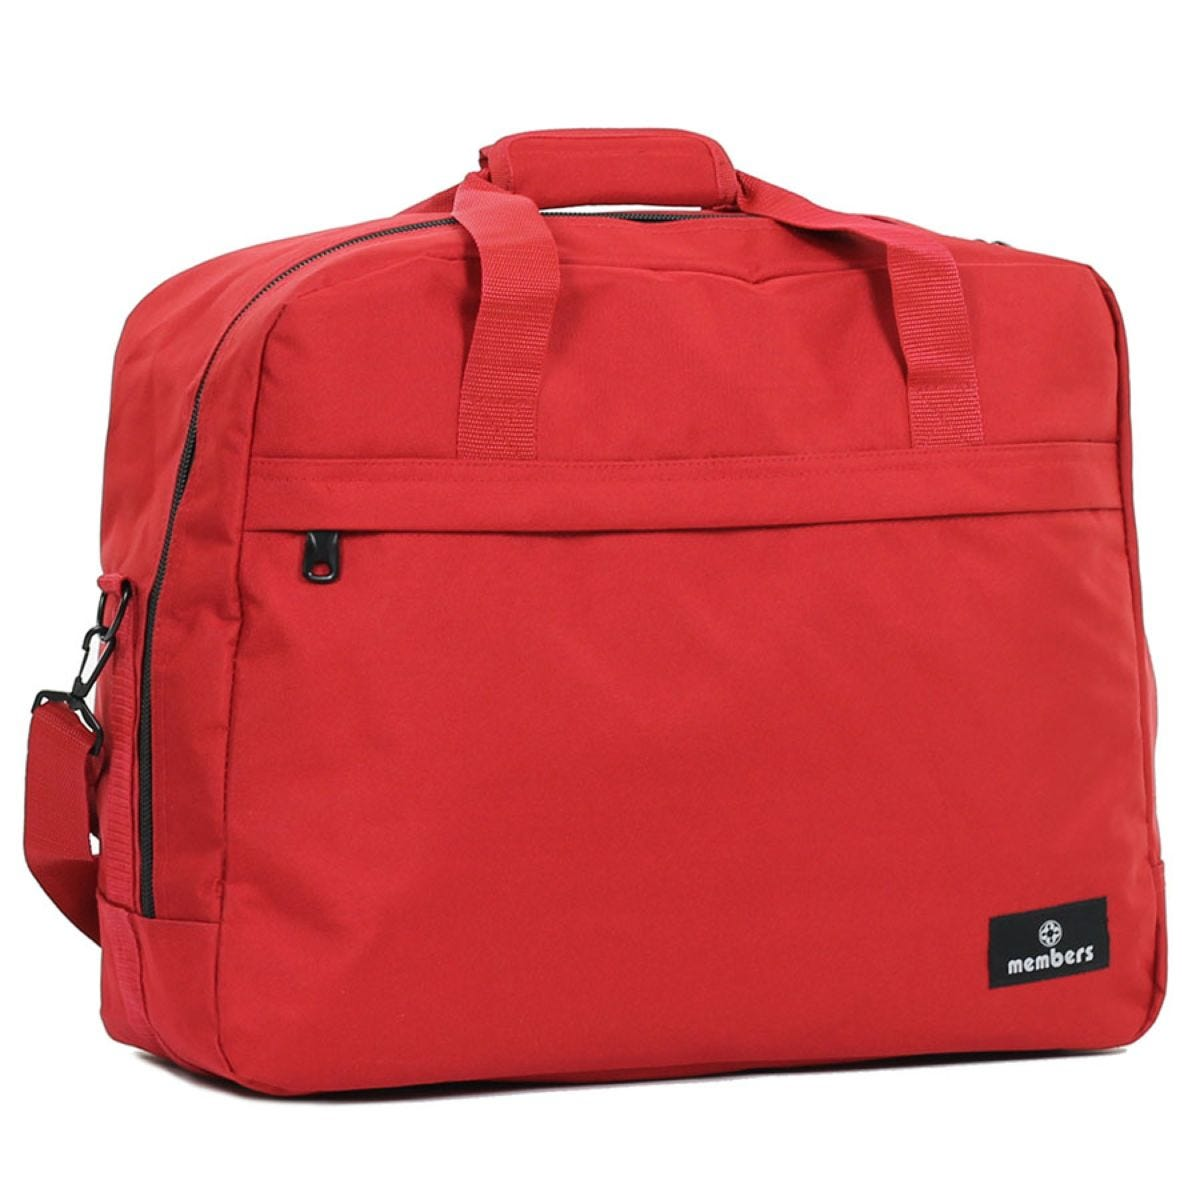 Members by Rock Luggage Essential Carry-On Travel Bag - Red